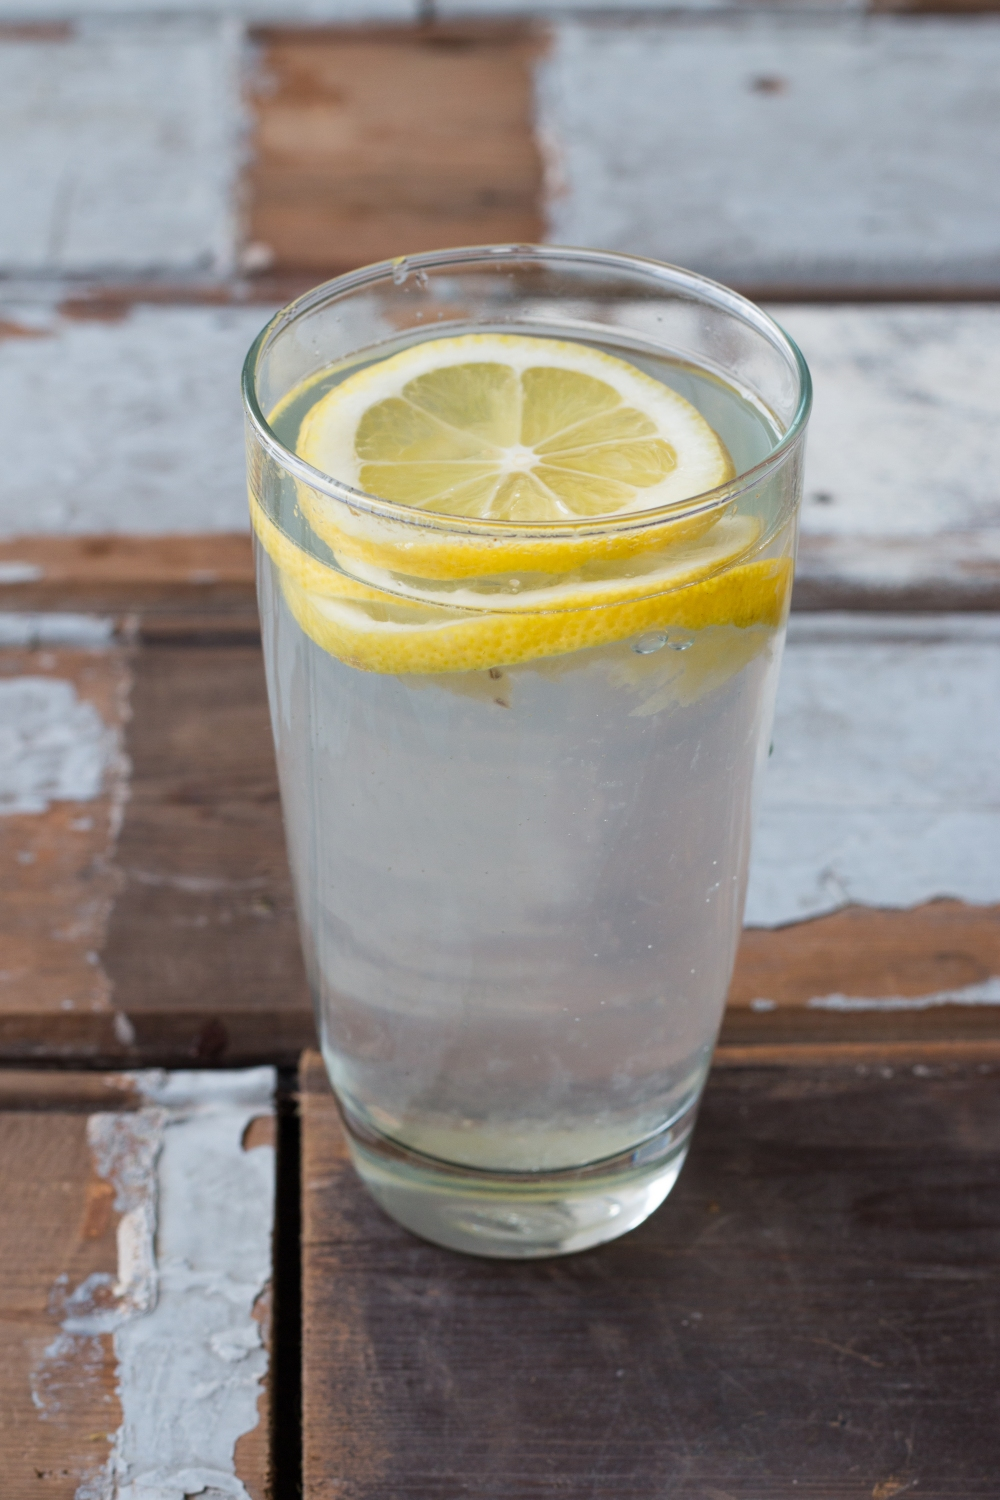 Detoxing // 8 reasons why you should drink warm lemon water